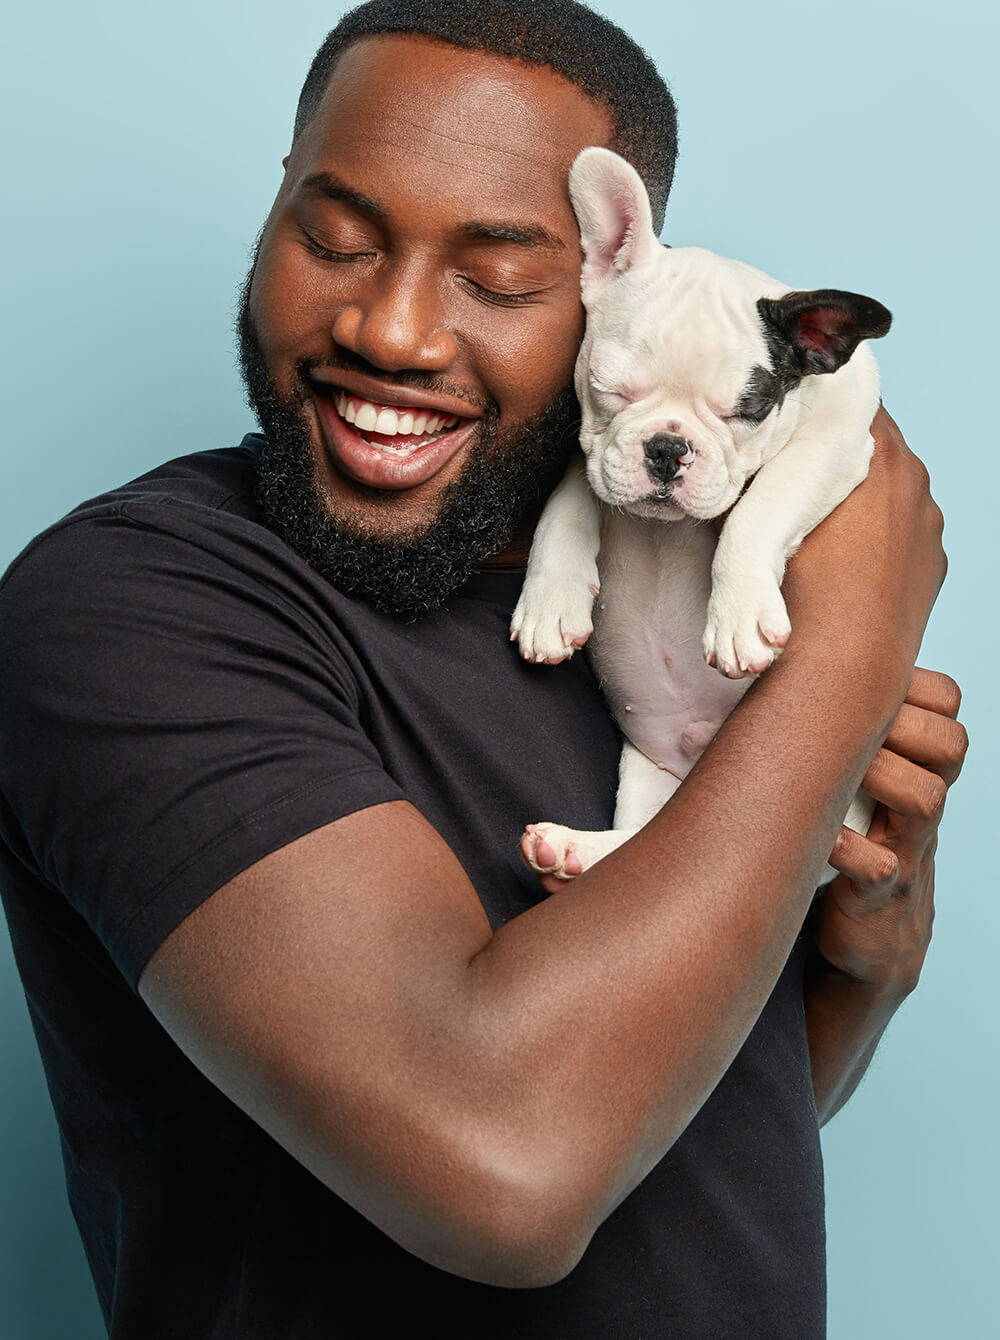 Man Smiling Holding A Dog